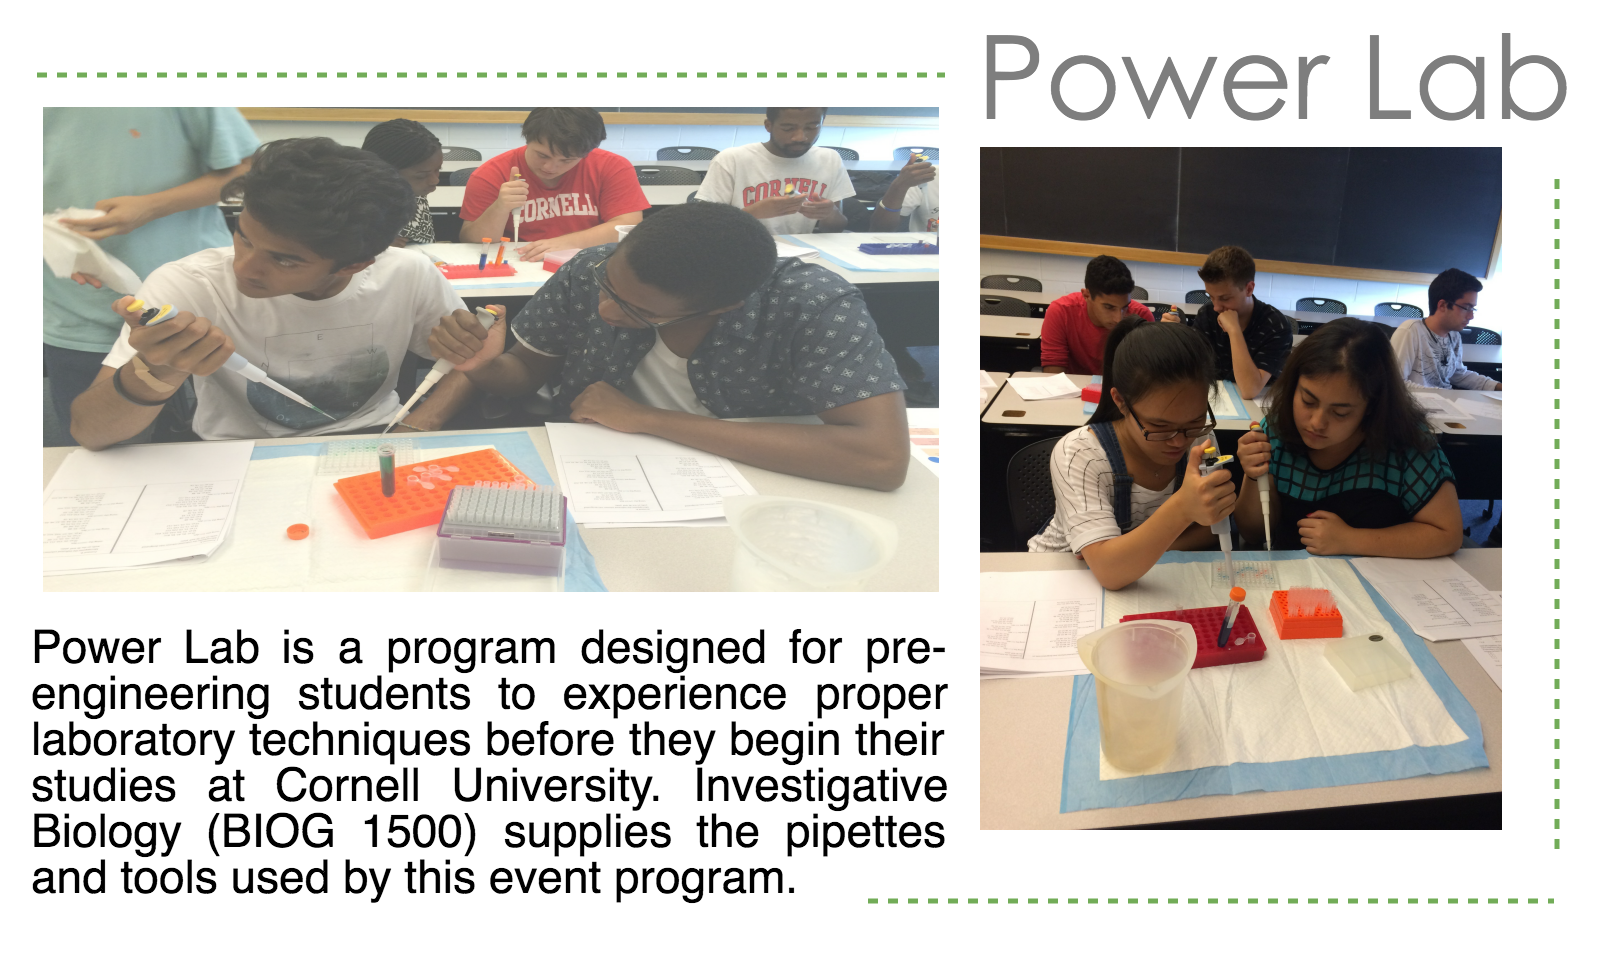 Power Lab for pre-engineering students